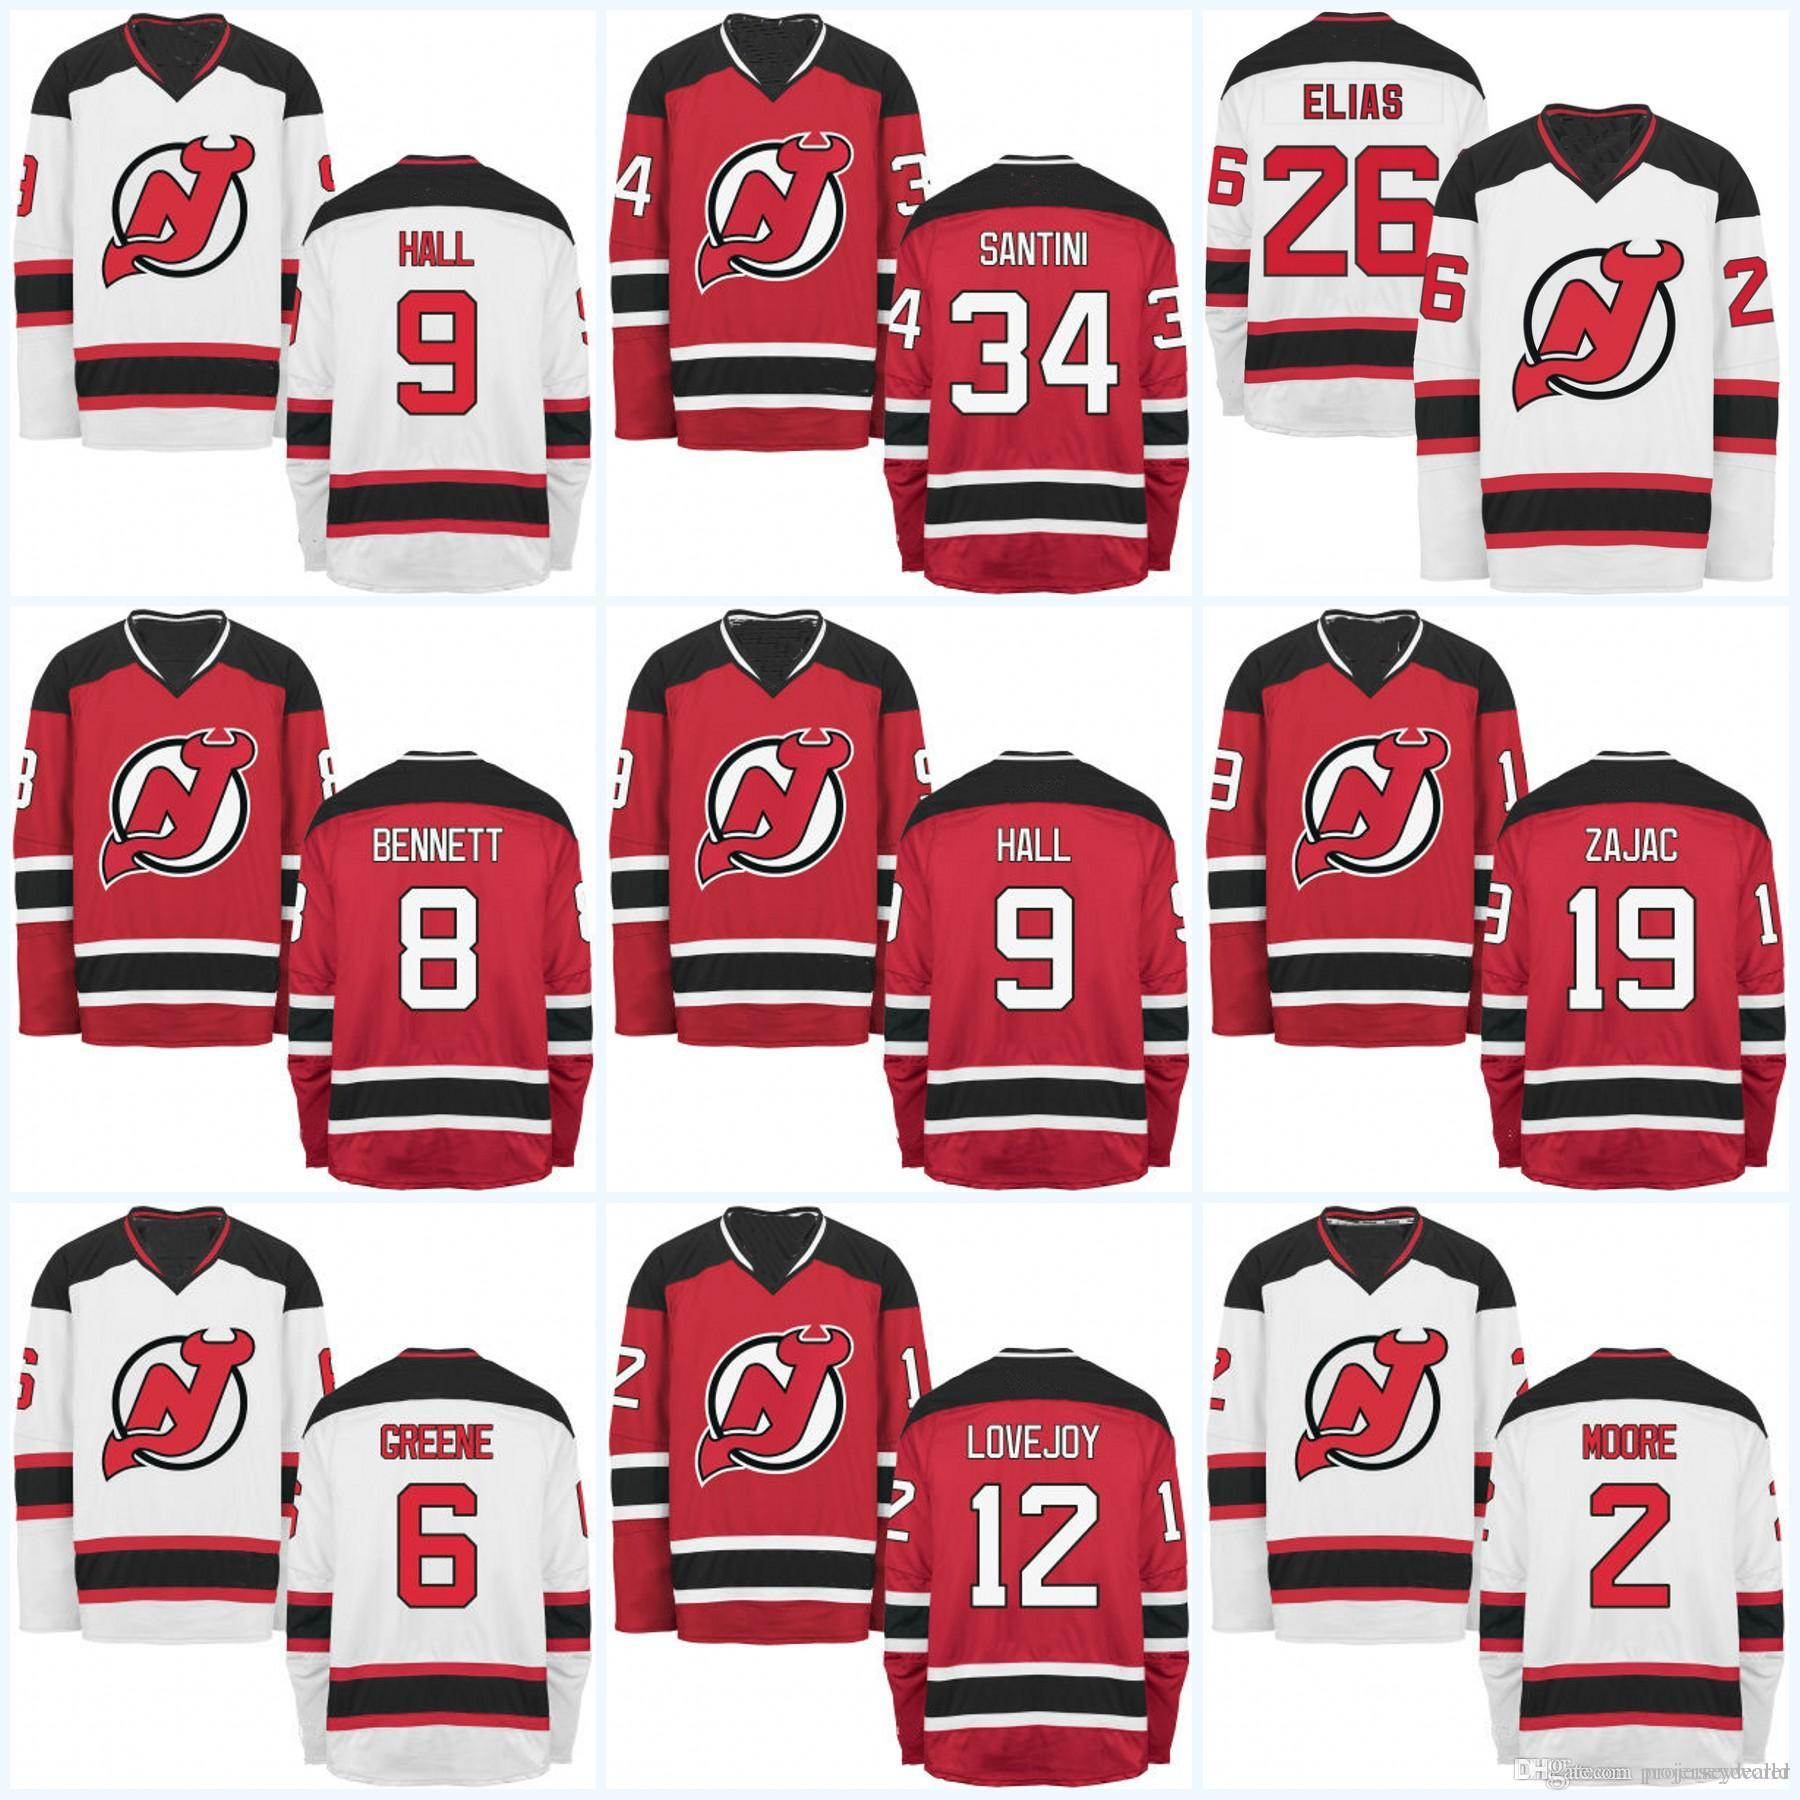 huge selection of 55c42 8af94 Zajac Jerseys 16 Josefson Elias Devils 9 Travis Ben New 19 ...